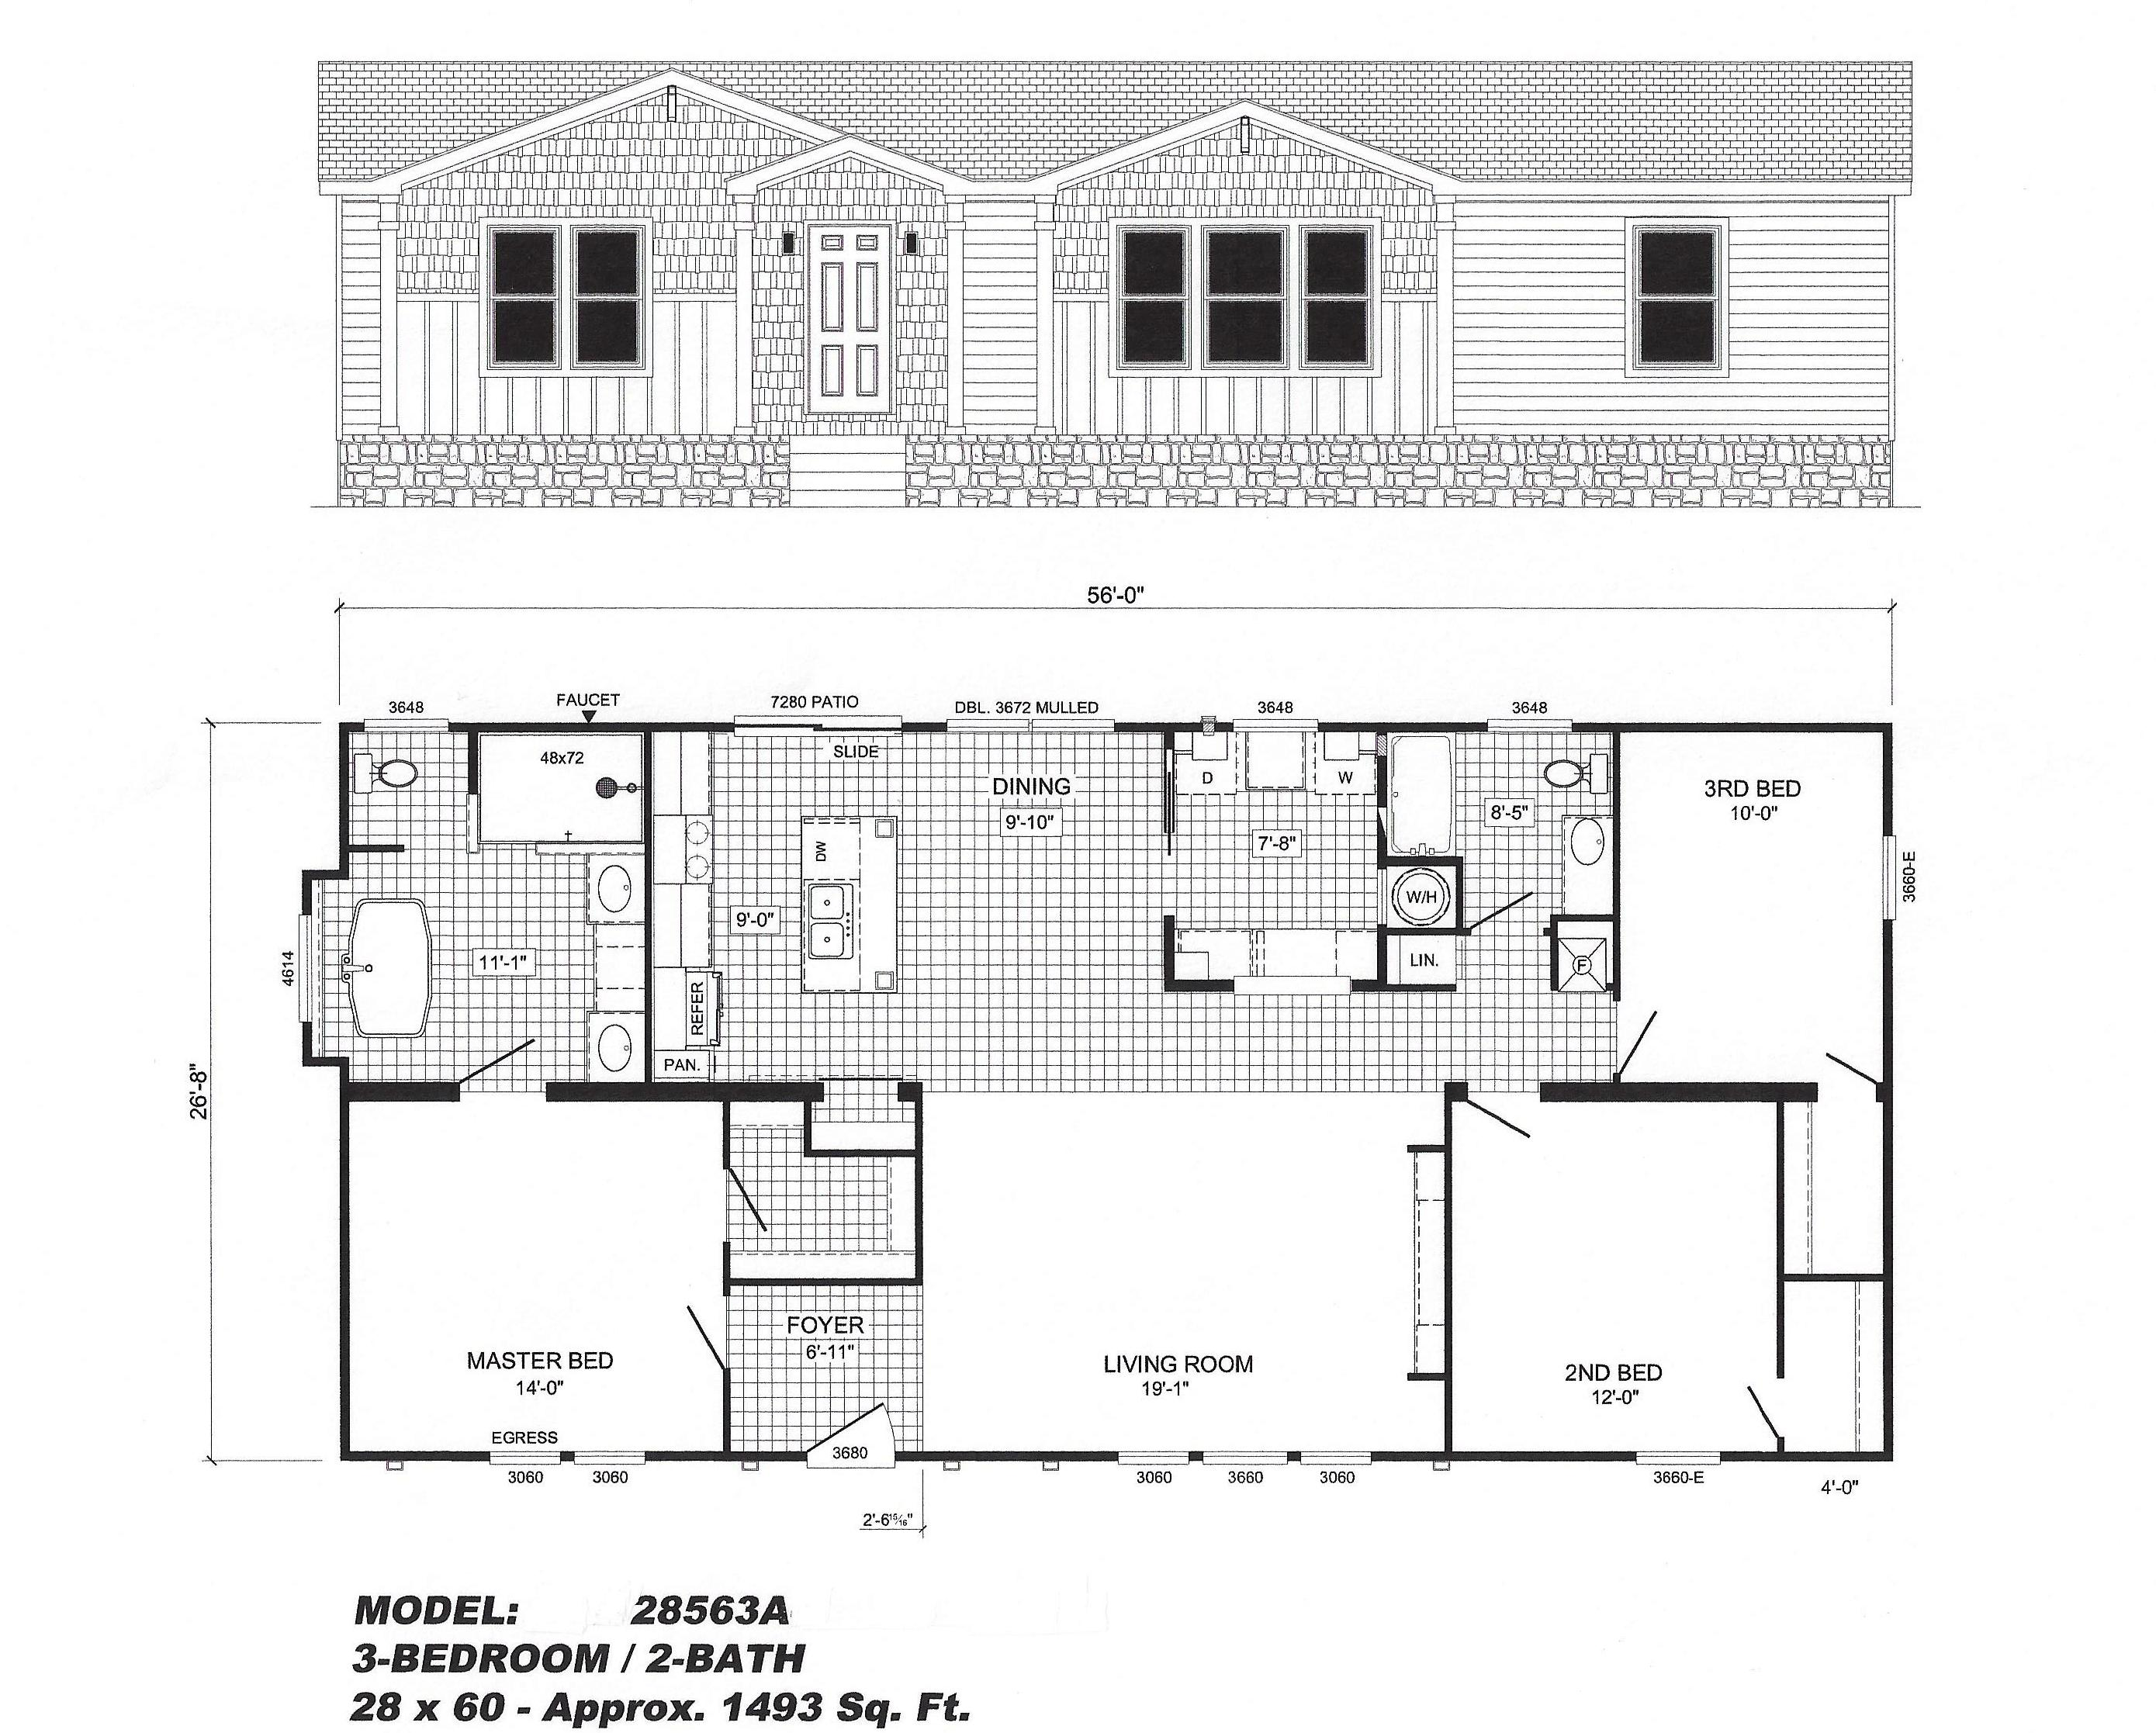 3 Bedroom Floor Plan B 2856 The Washington Hawks Homes